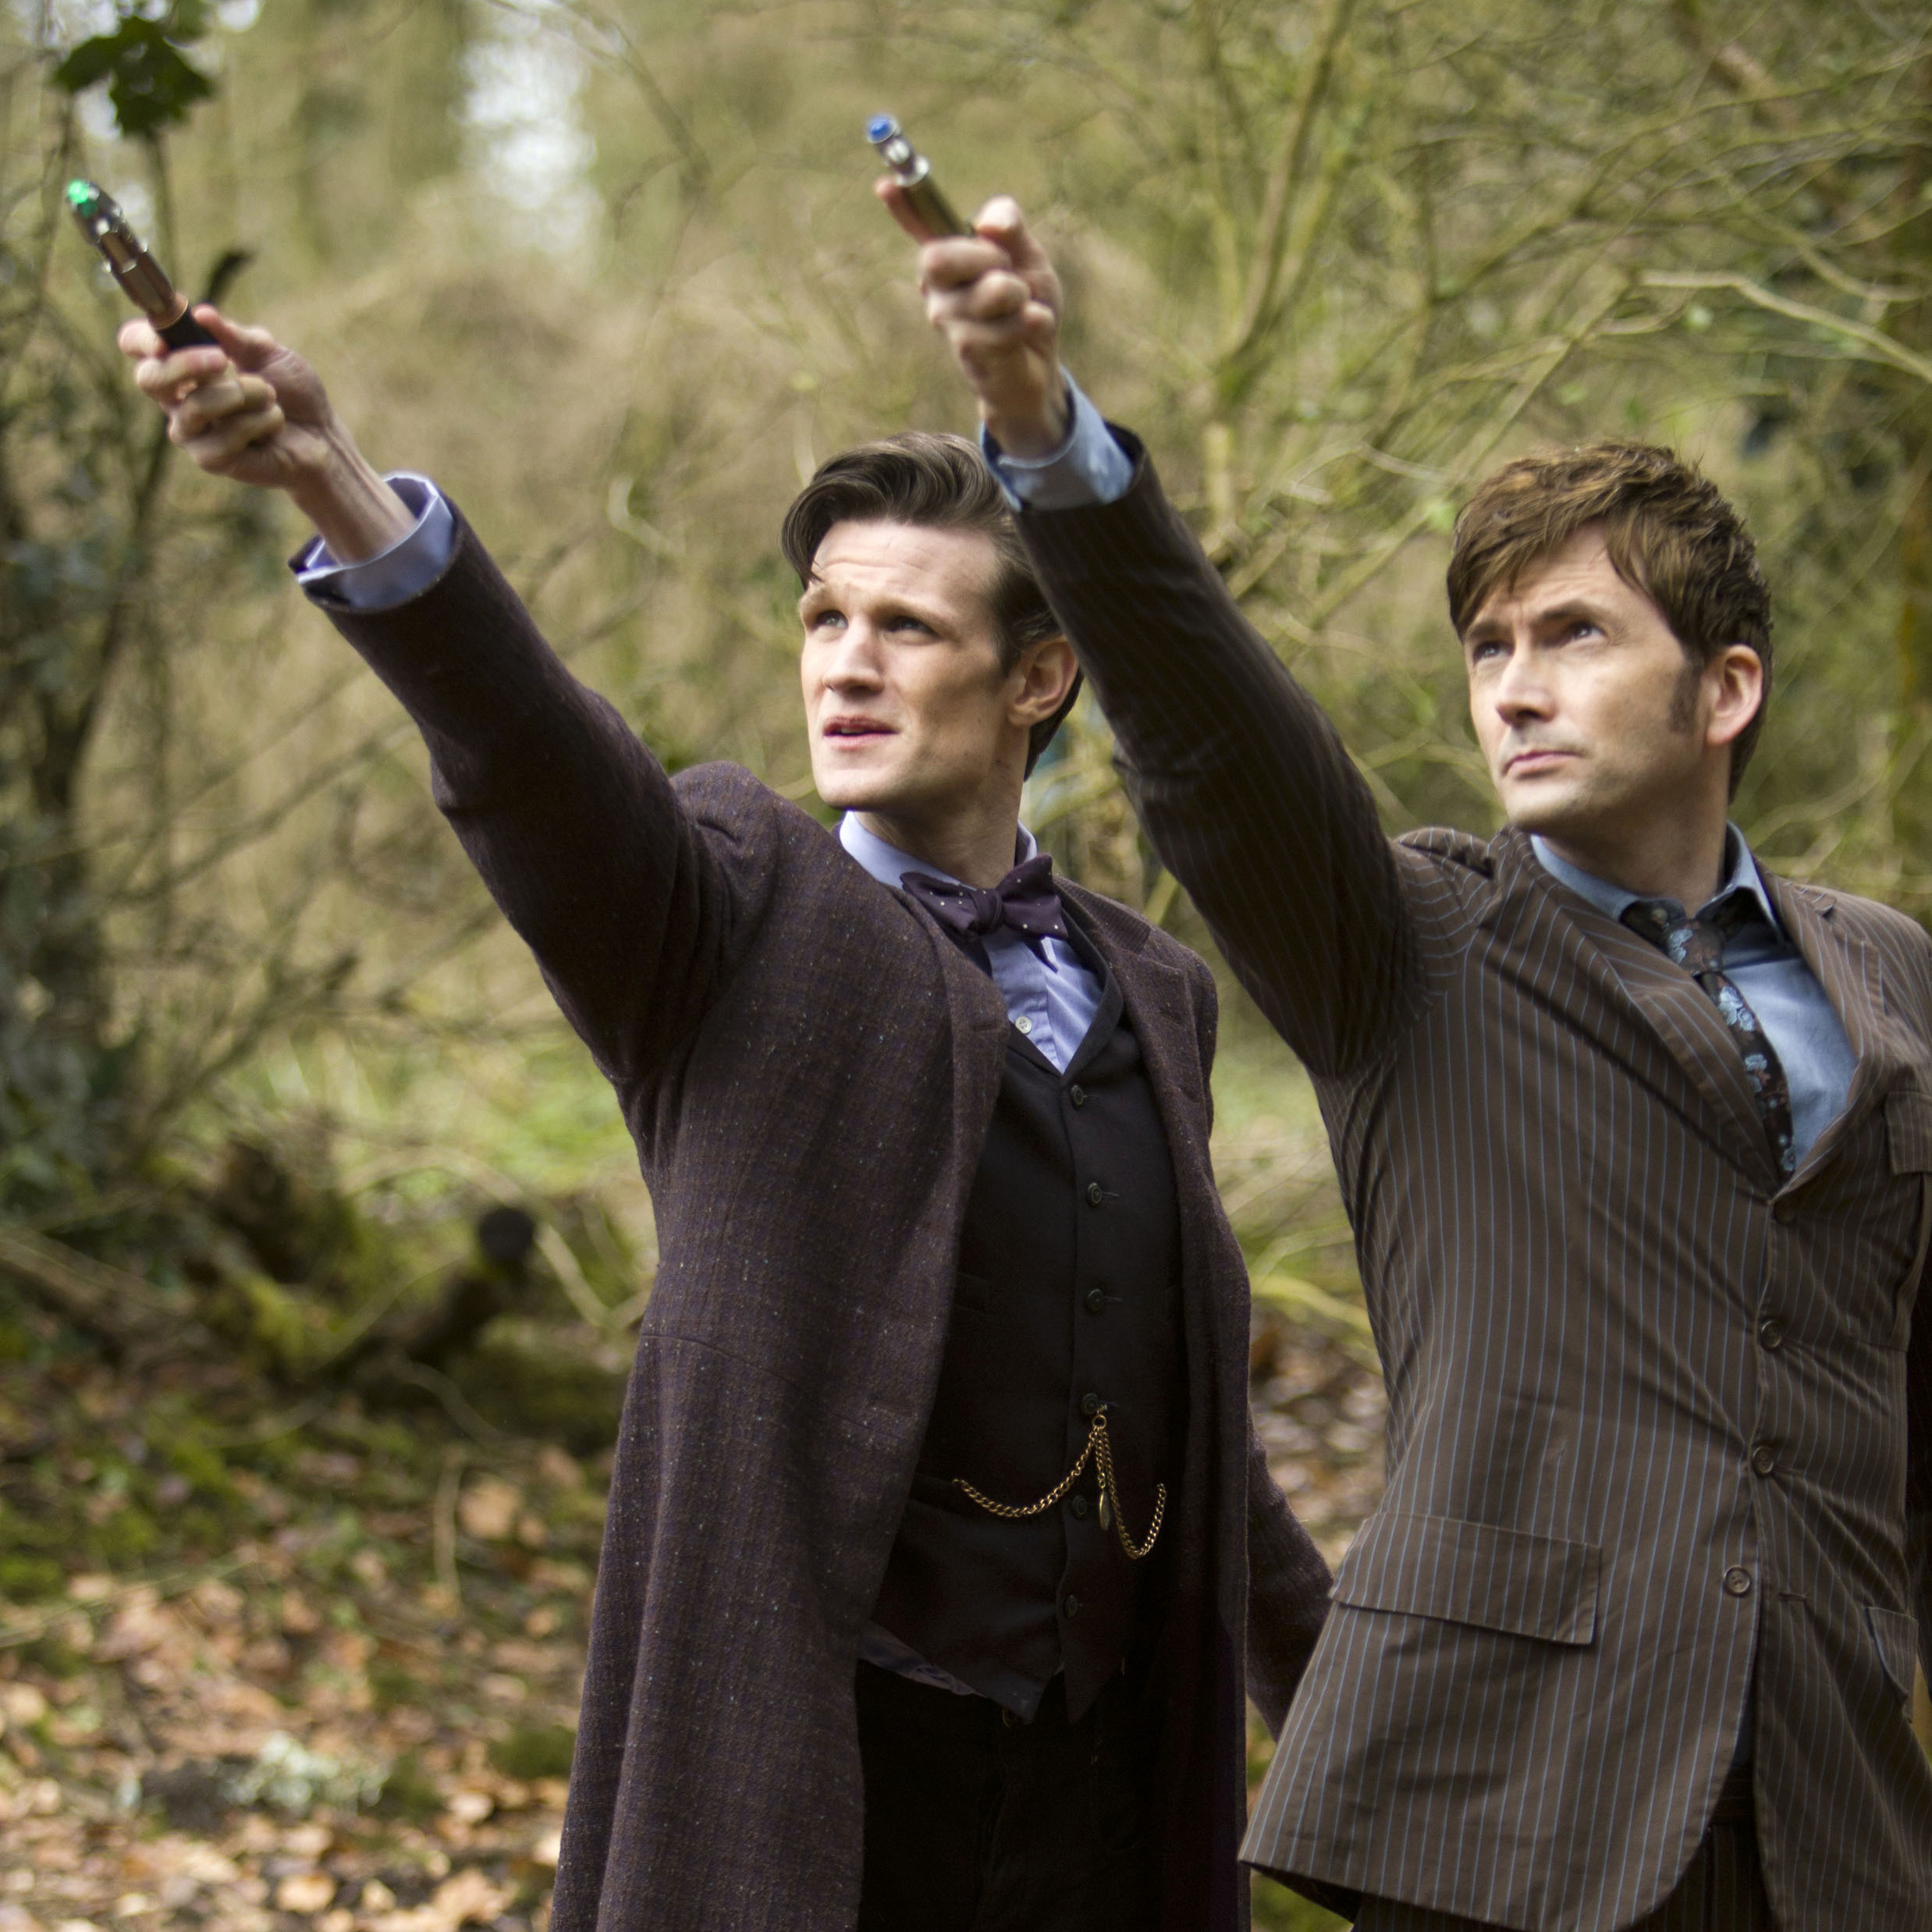 Tenth Doctor David Tennant brandishes his sonic screwdriver alongside current Doctor Matt Smith in the 50th anniversary special.